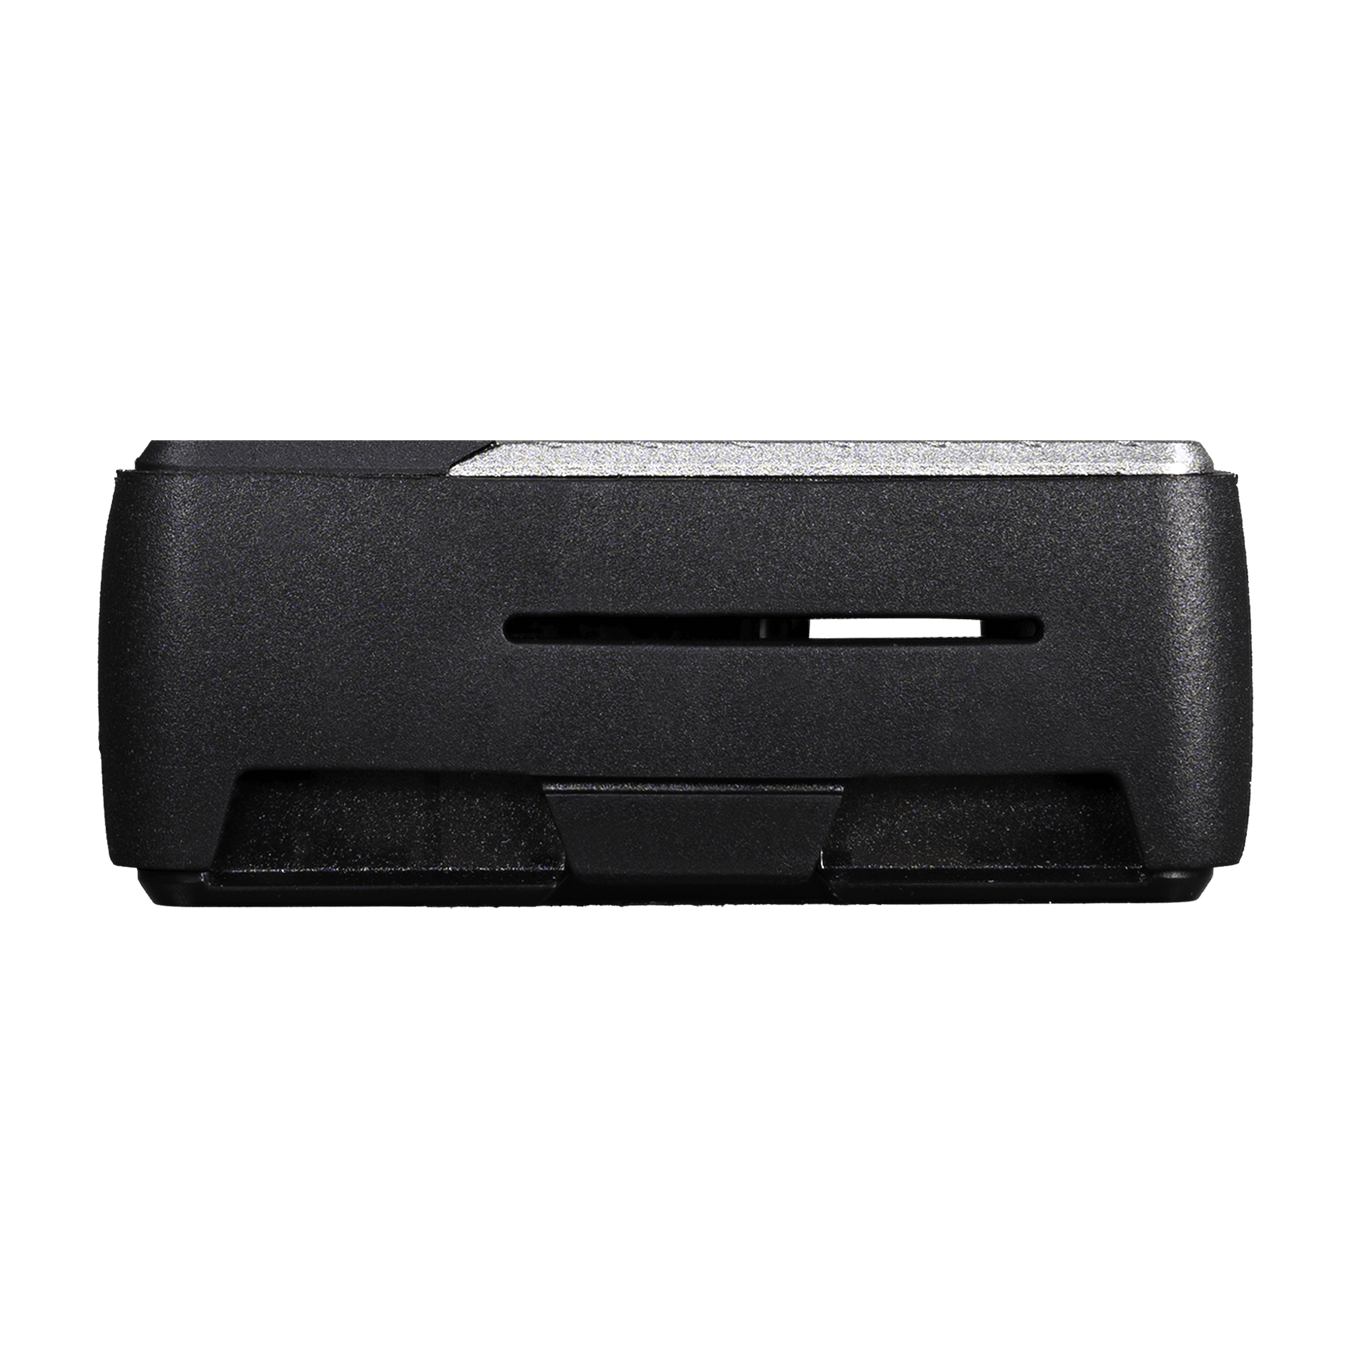 Front view of the Pi Case 40 V2  with a slit in the TPU bumper for display and camera connection.